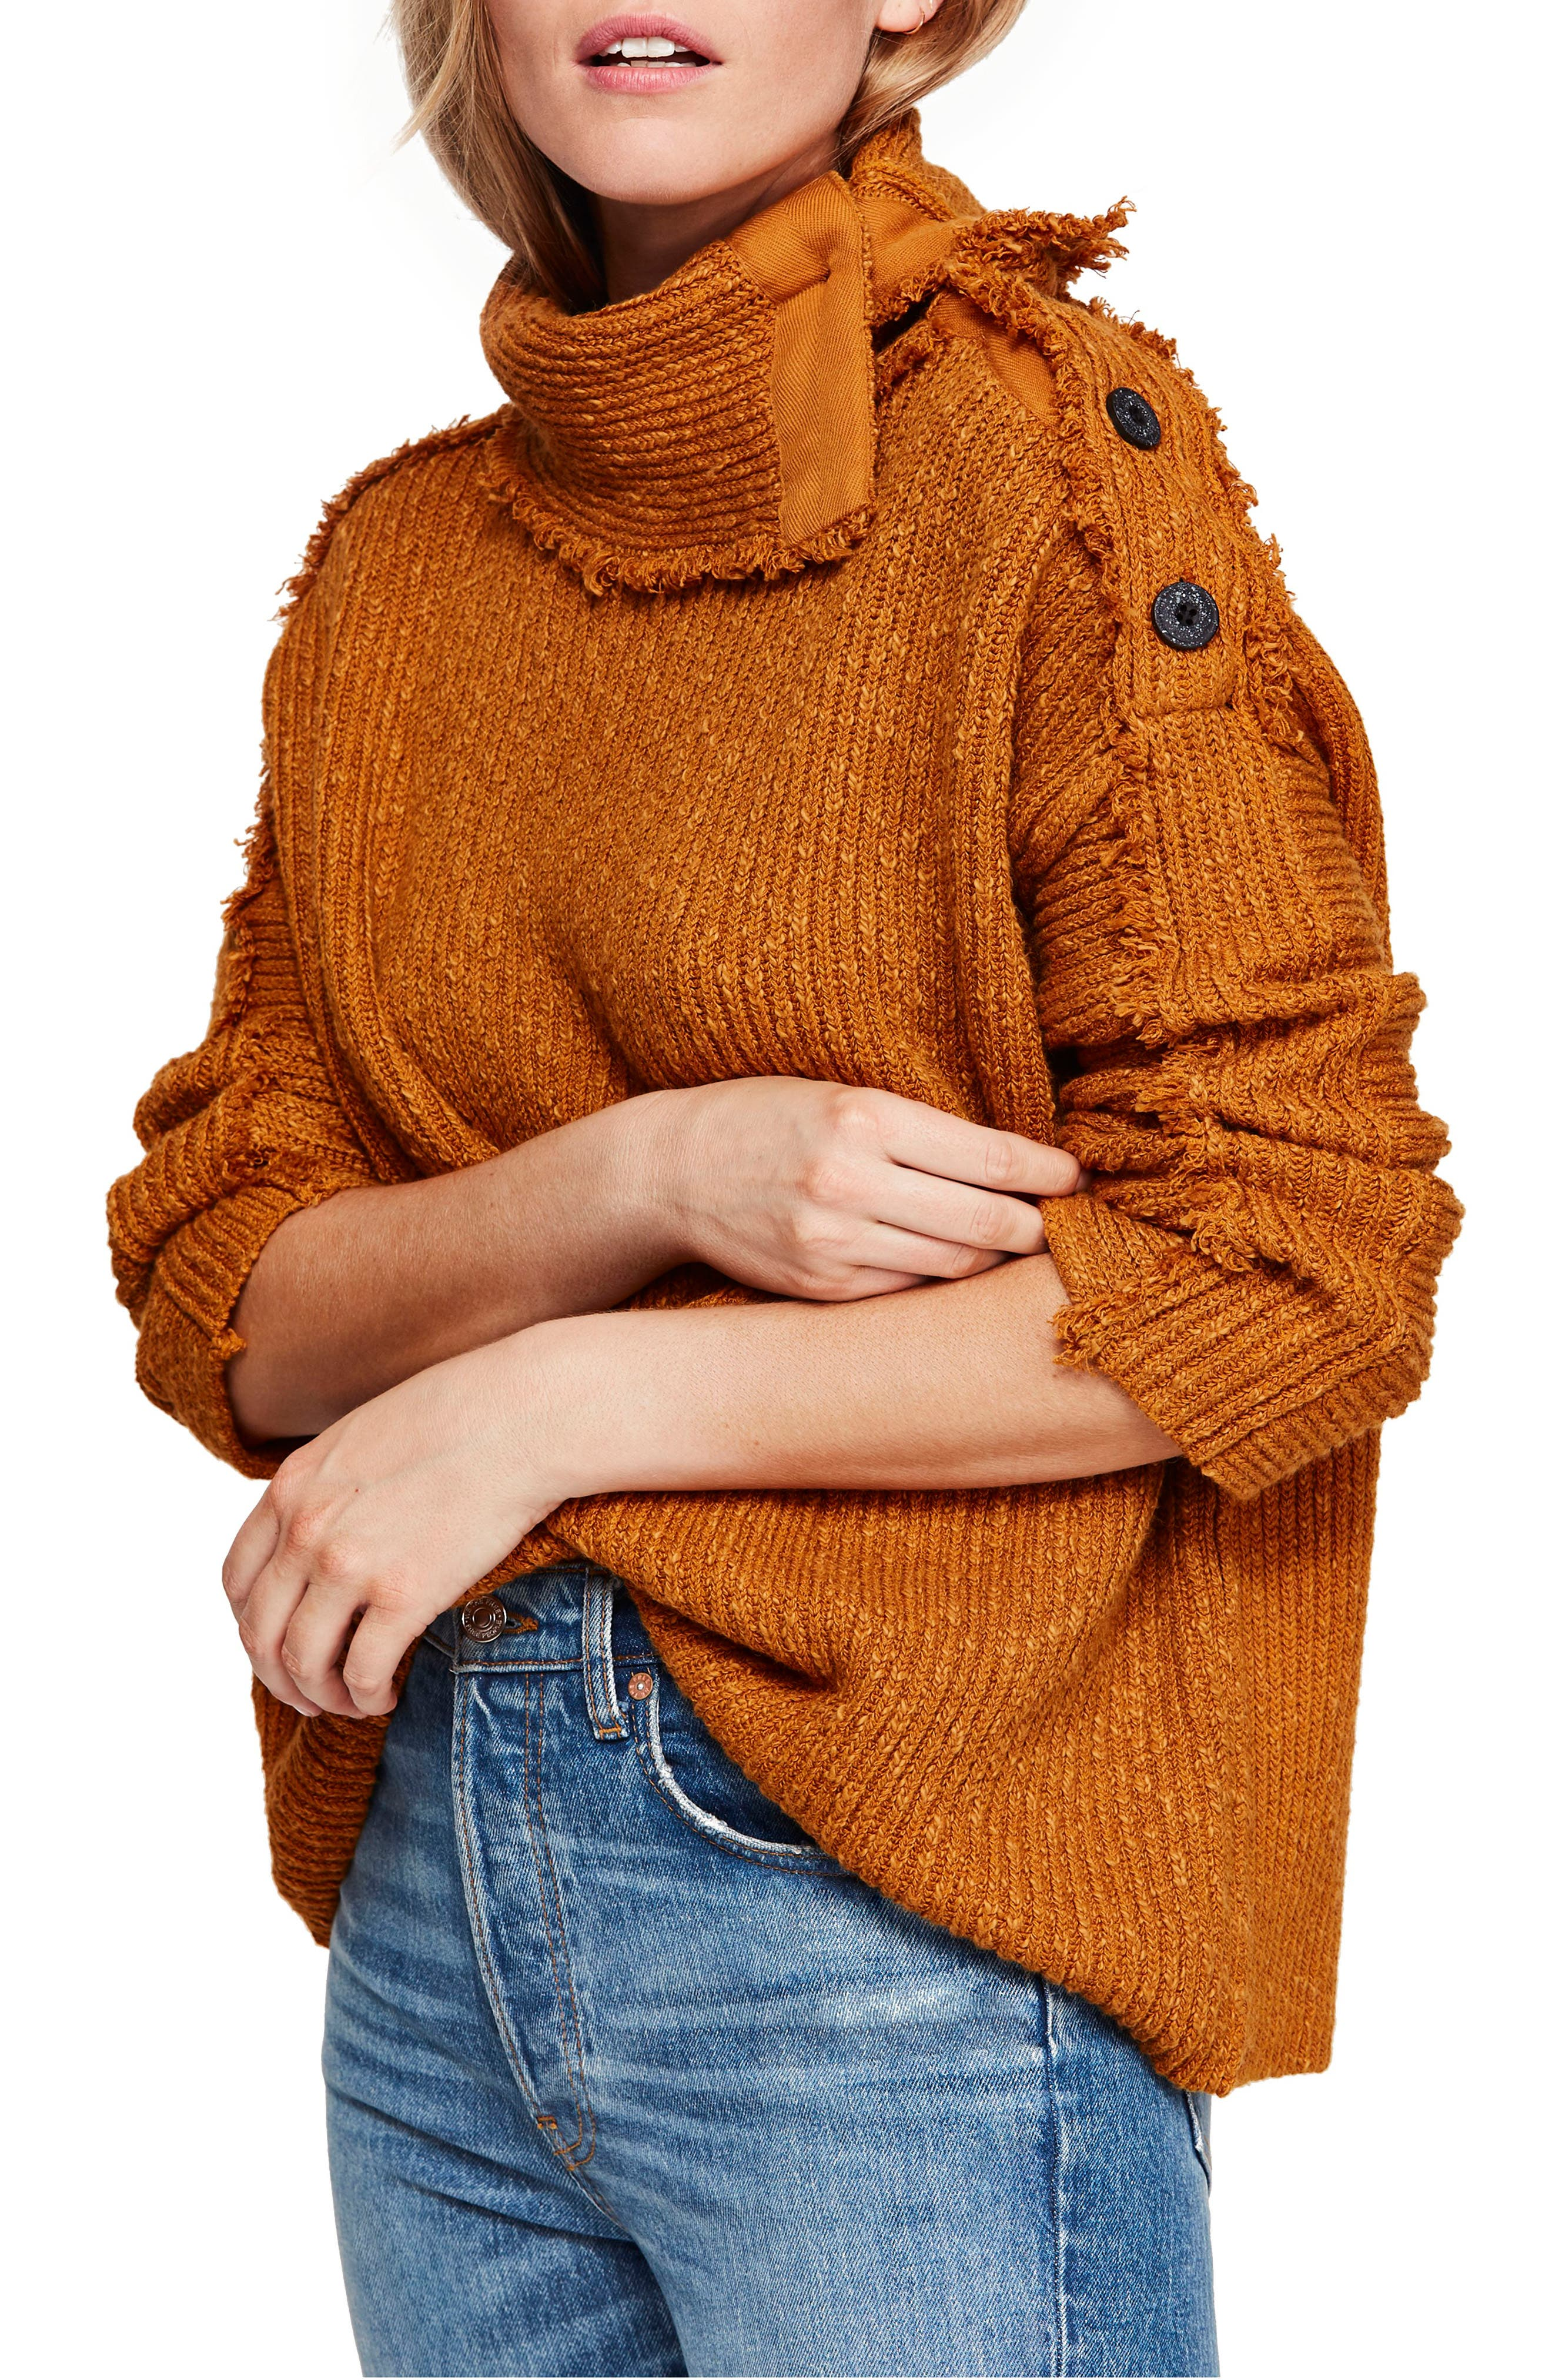 On My Side Turtleneck Sweater,                             Main thumbnail 1, color,                             710